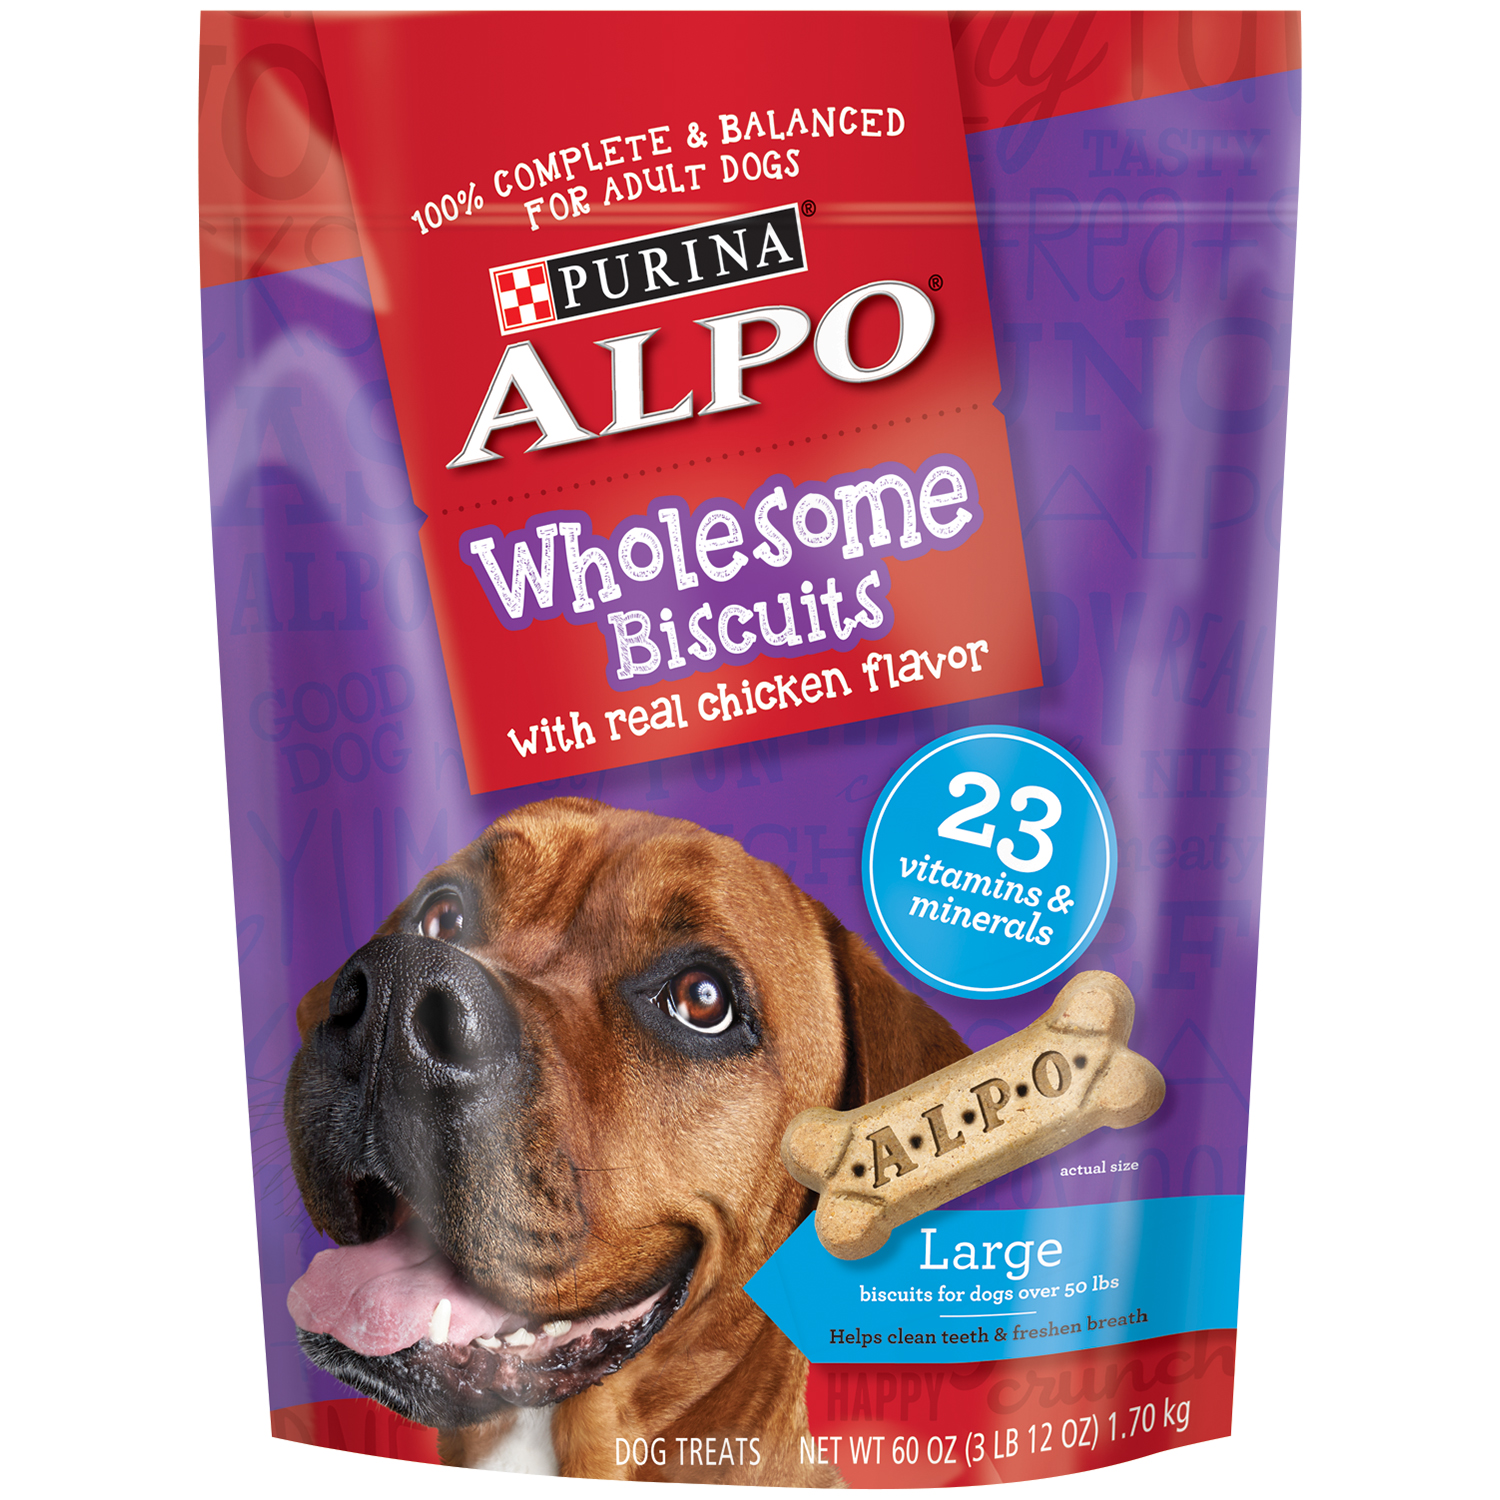 Purina ALPO Wholesome Biscuits Large Dog Treats with Real Chicken Flavor 60 oz. Pouch